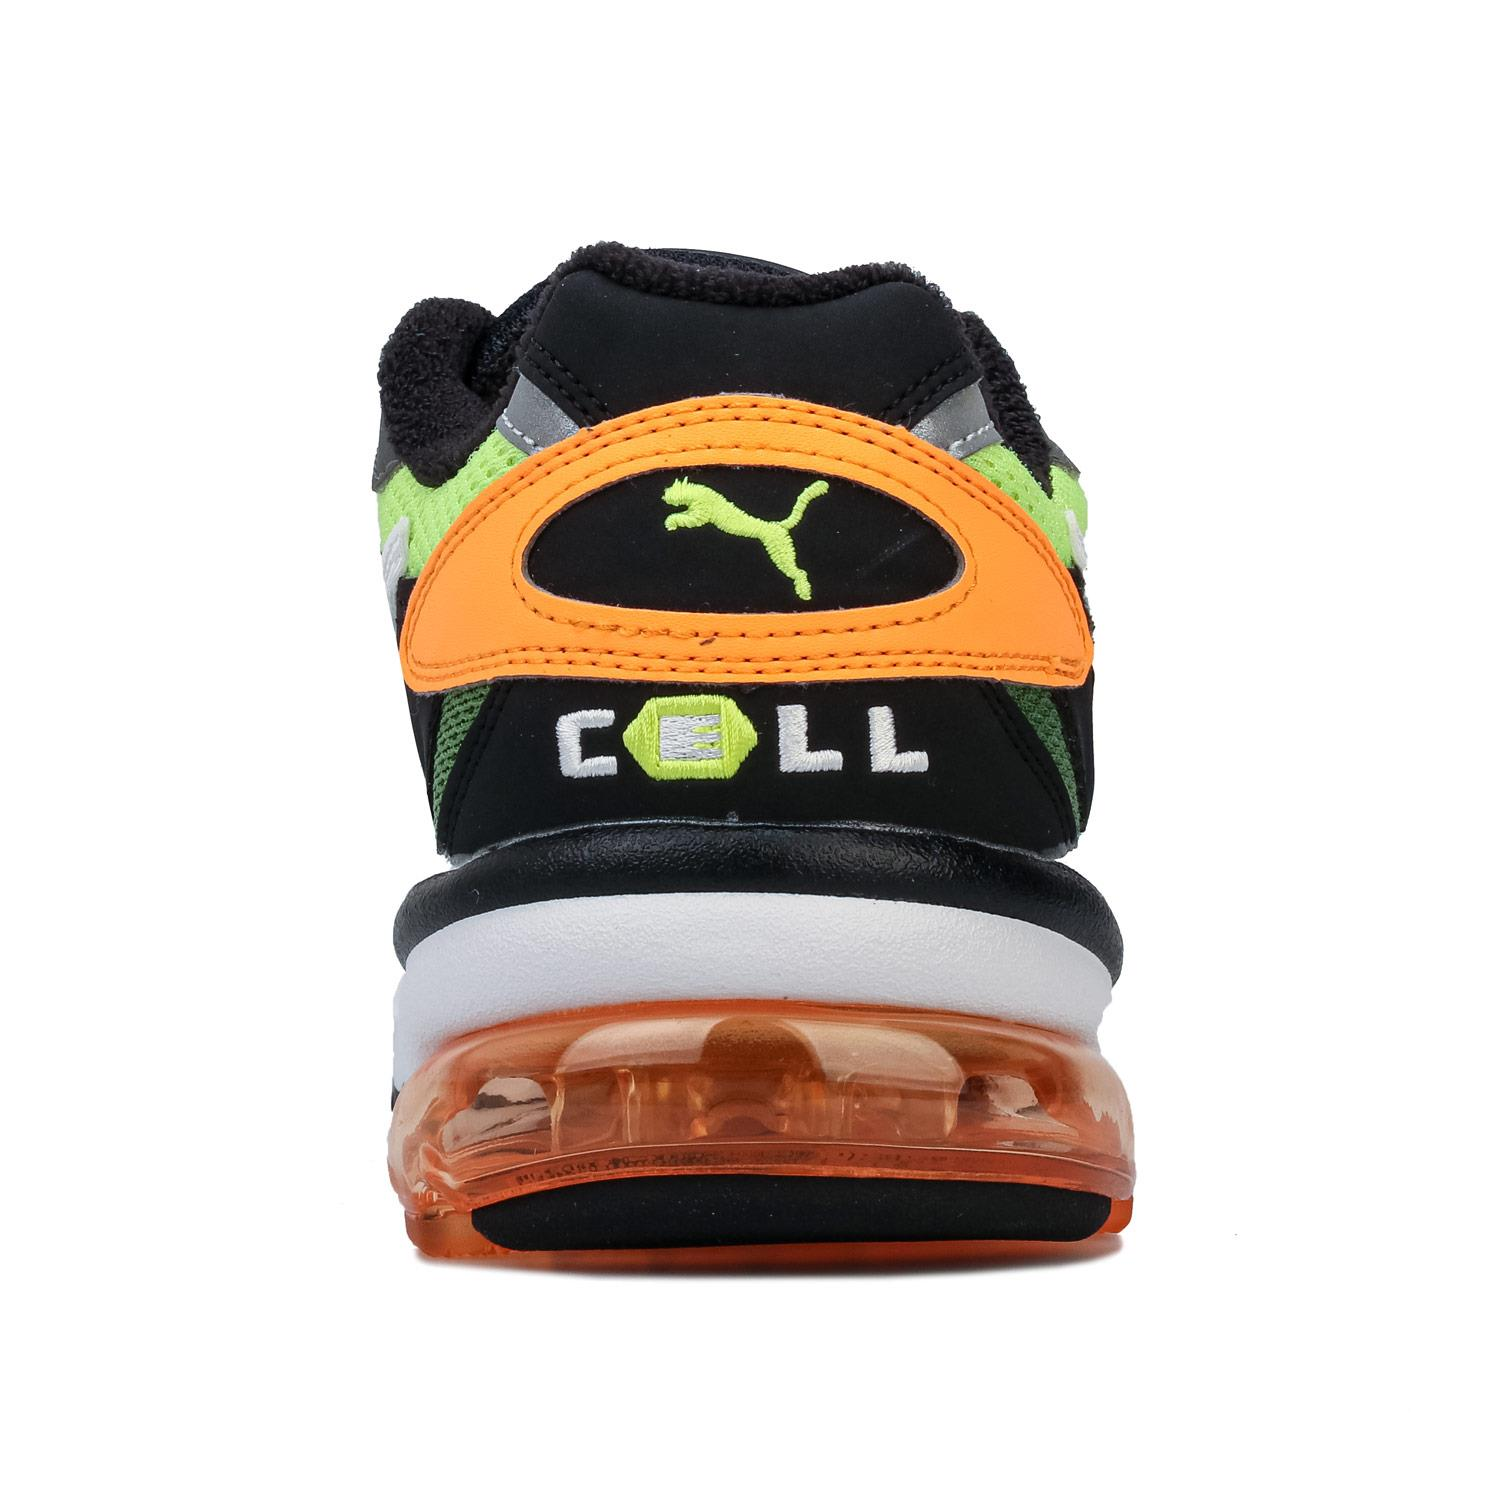 Mens-Puma-Cell-Alien-OG-Trainers-in-Blue-Green-Black-Red-Blue-and-Yellow thumbnail 24